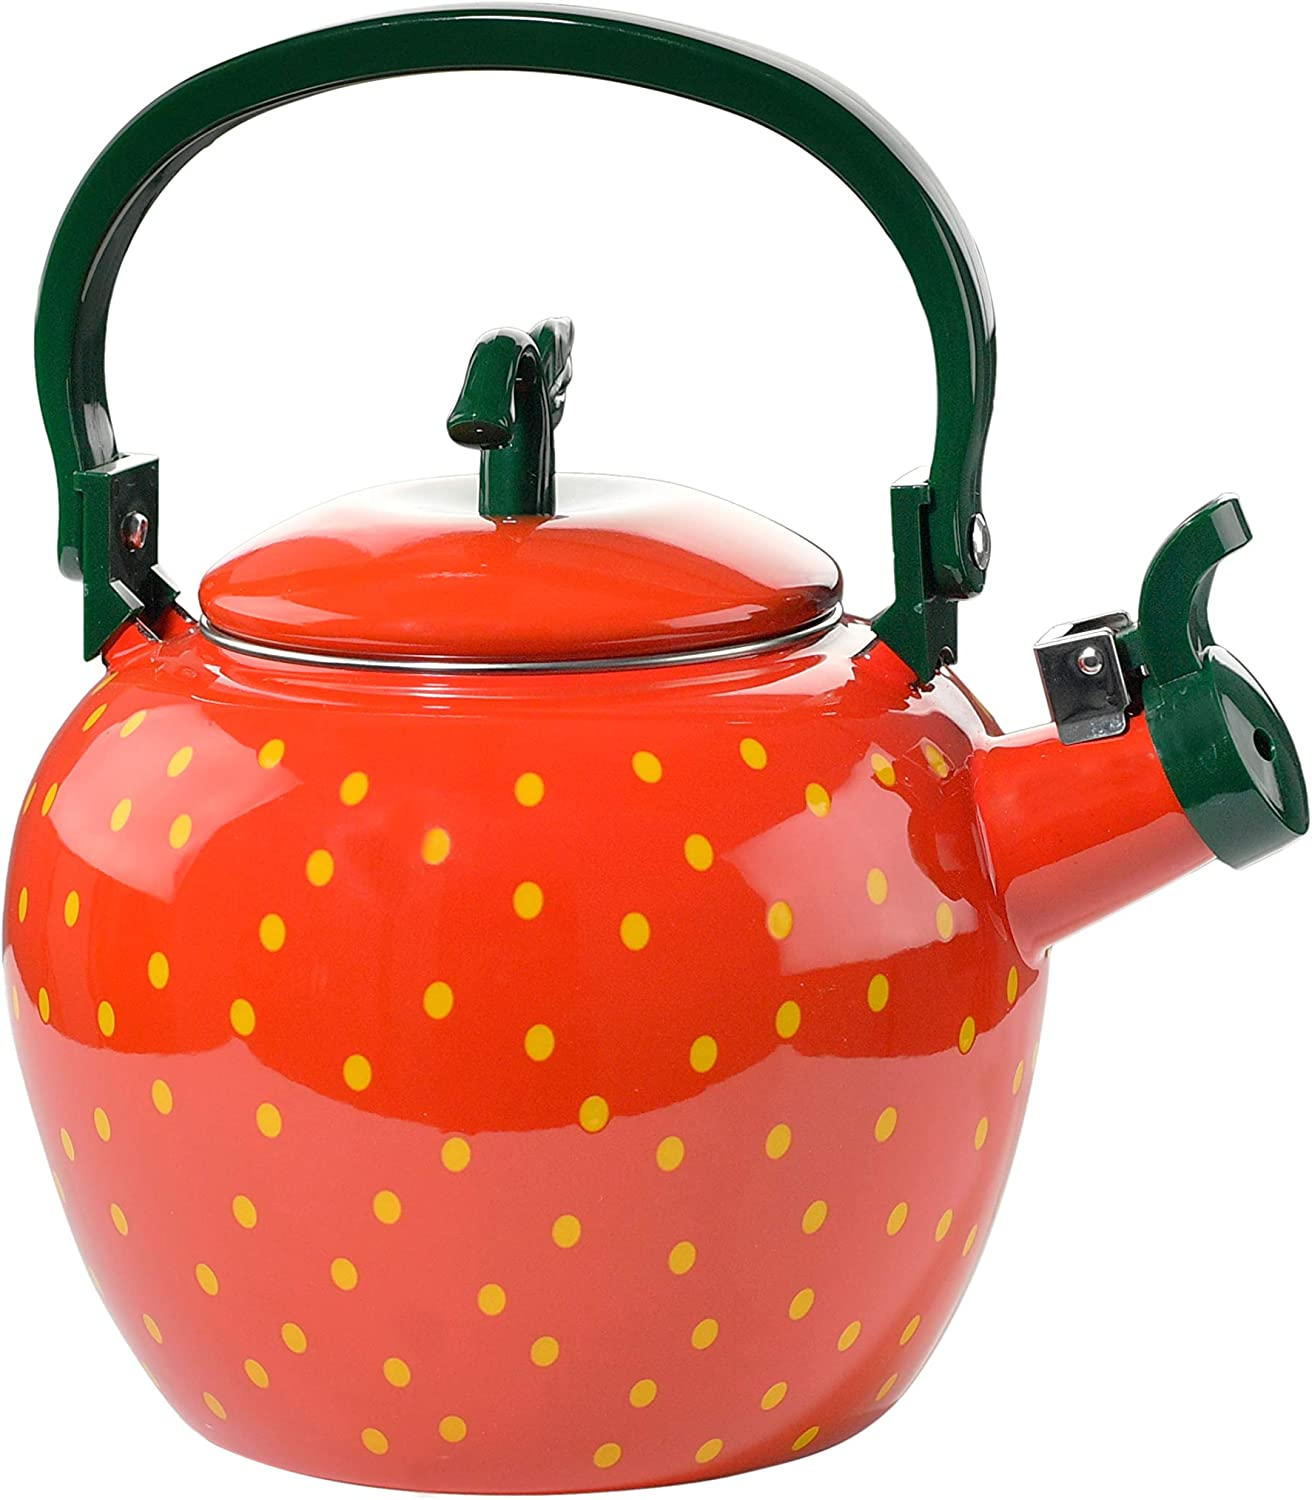 HOME-X Strawberry Whistling Tea Kettle, Cute Fruit Teapot, Kitchen Accessories & Décor